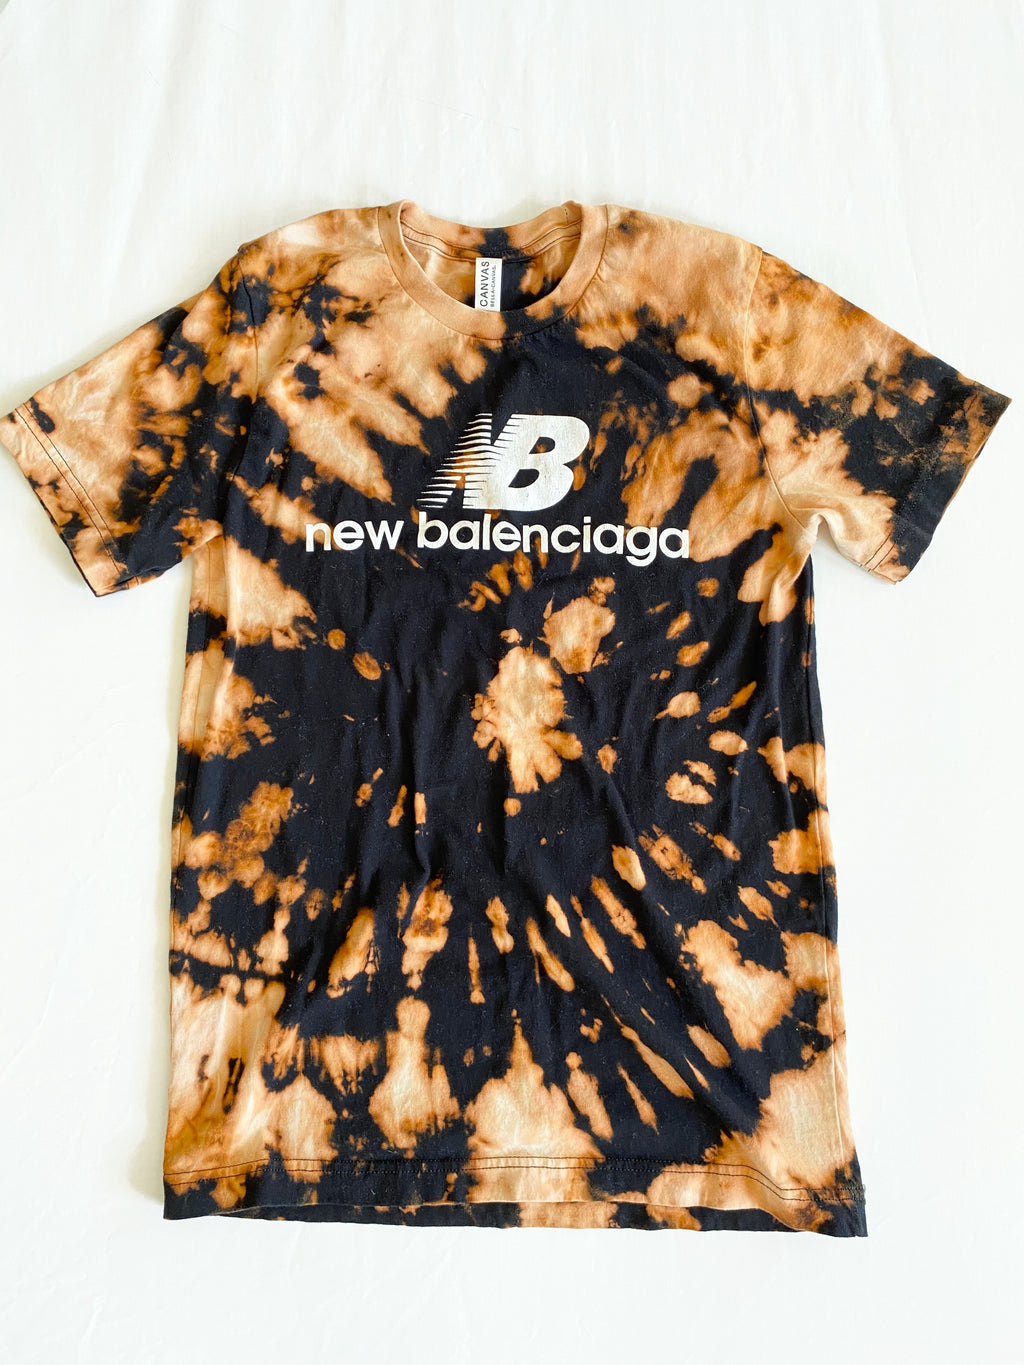 Balenciaga Graphic Tee (Acid Wash)